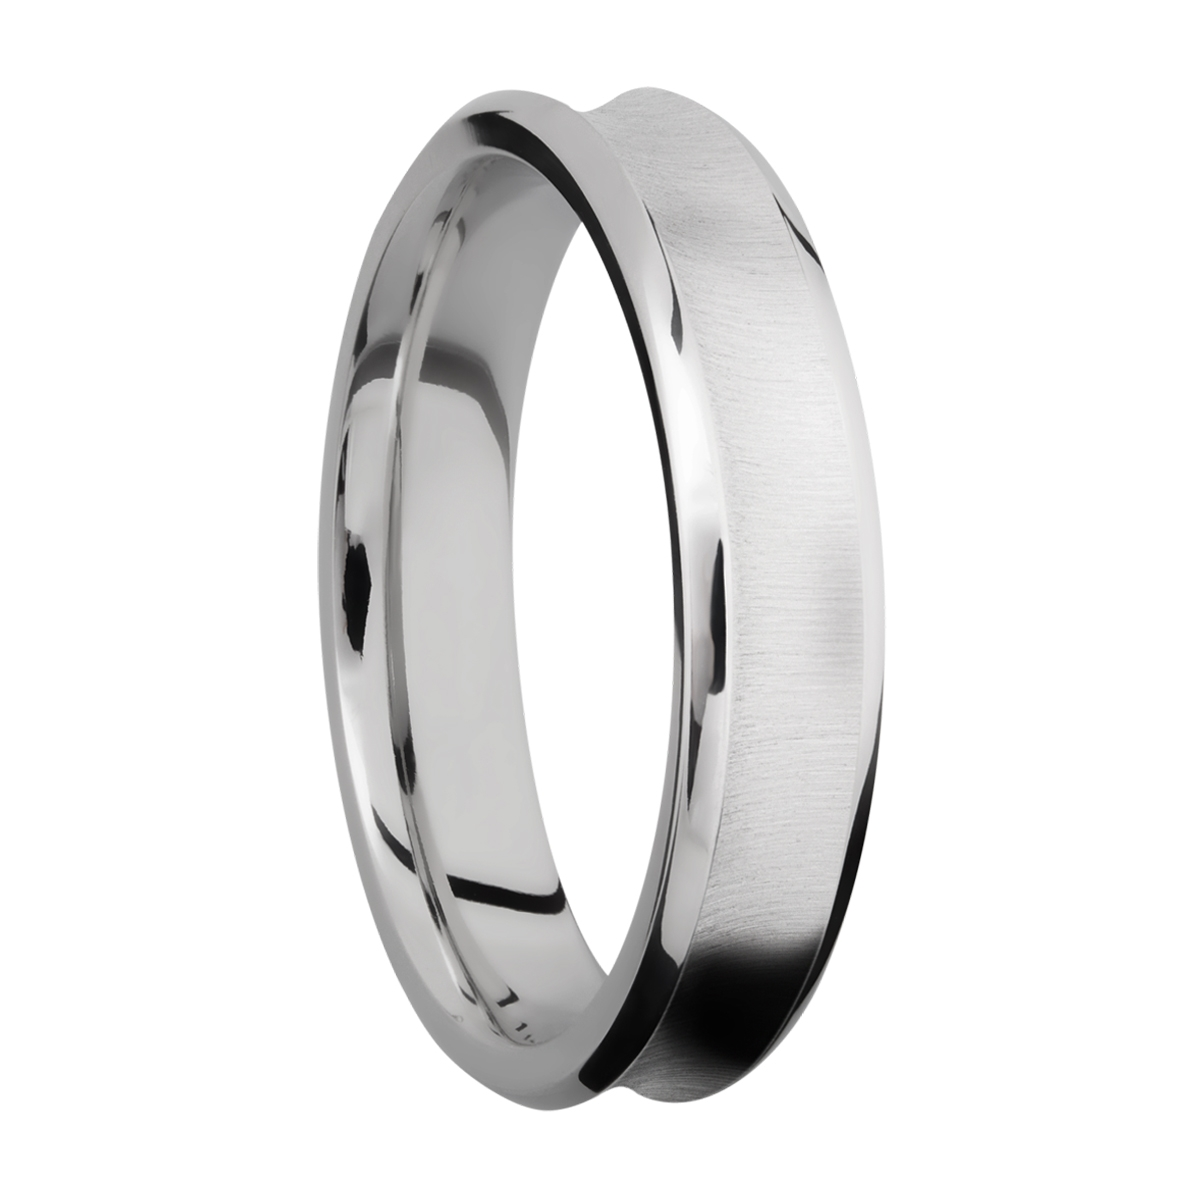 Lashbrook CC5CB Cobalt Chrome Wedding Ring or Band Alternative View 1